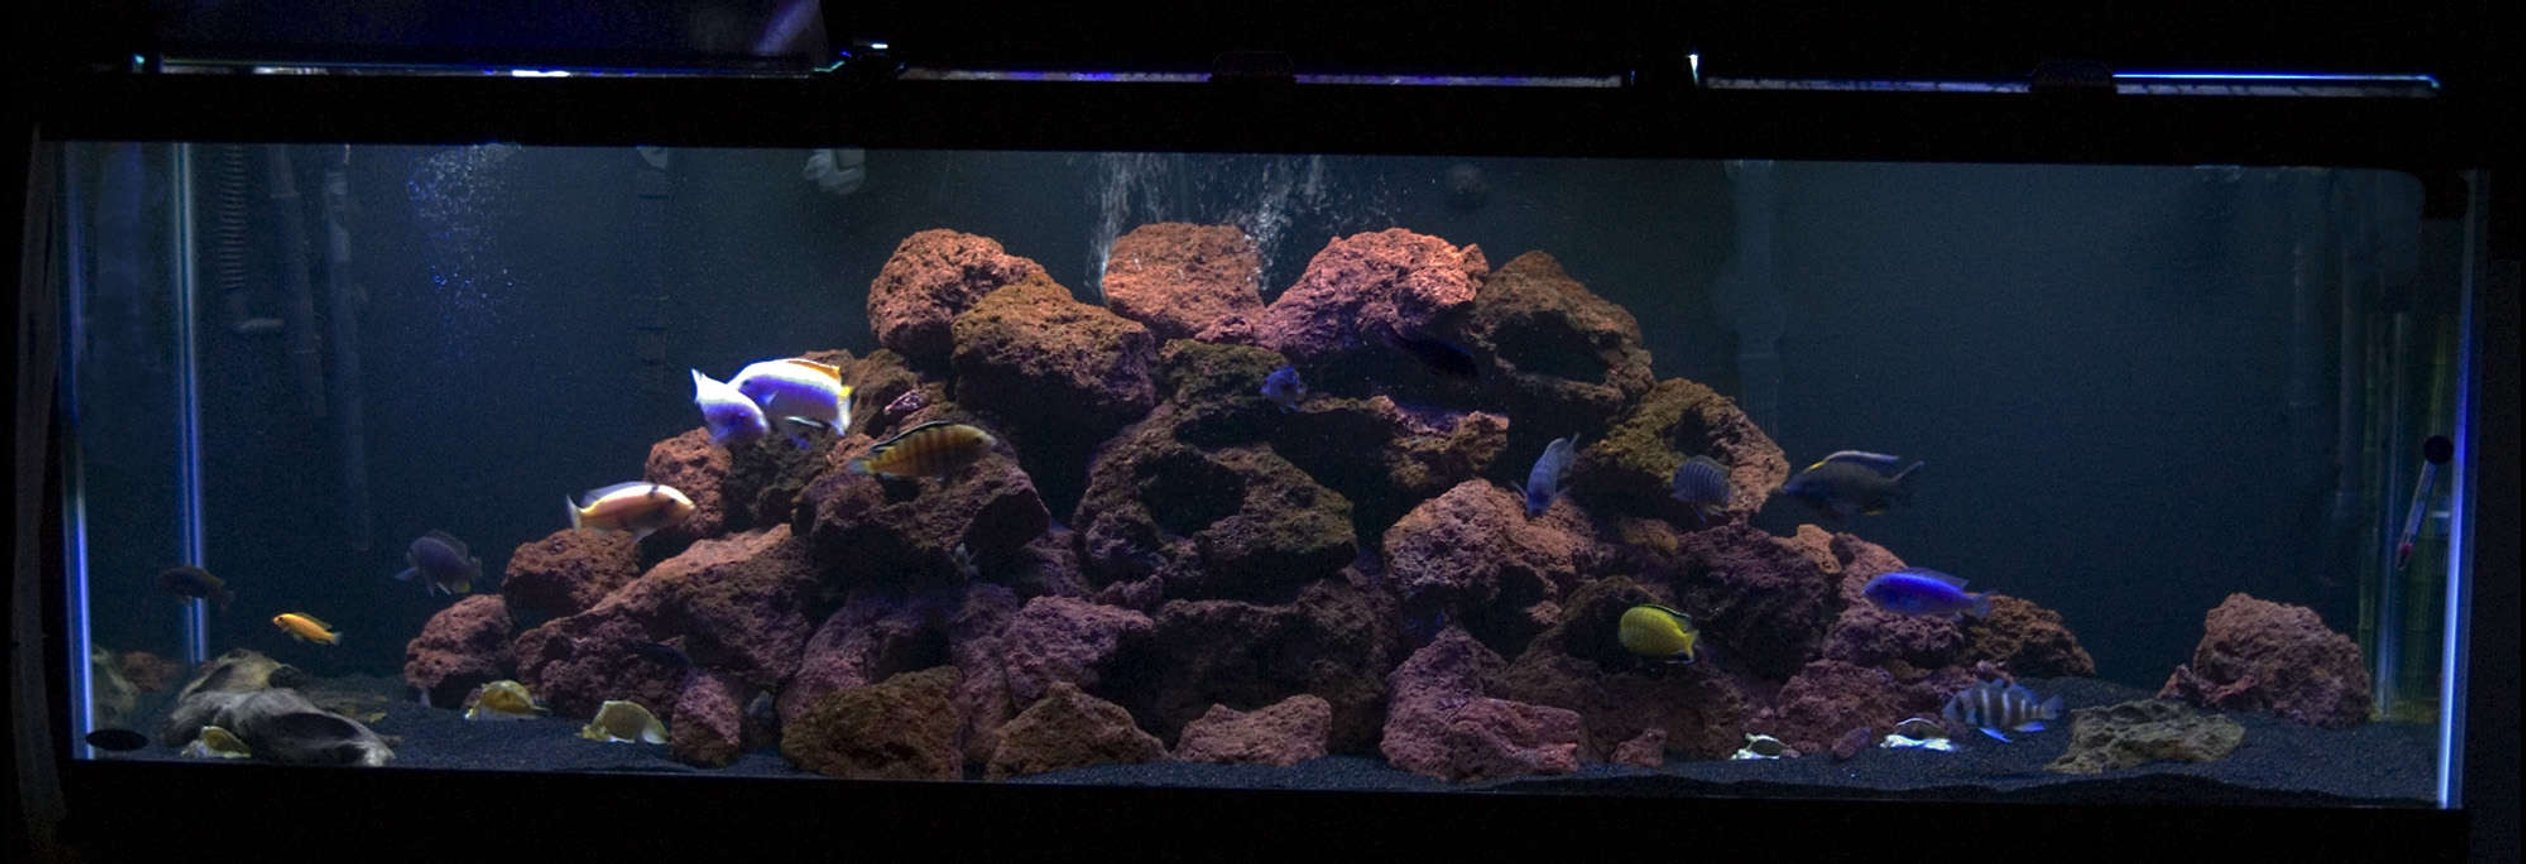 125 gallons freshwater fish tank (mostly fish and non-living decorations) - My tank ala Tahitian moon black sand